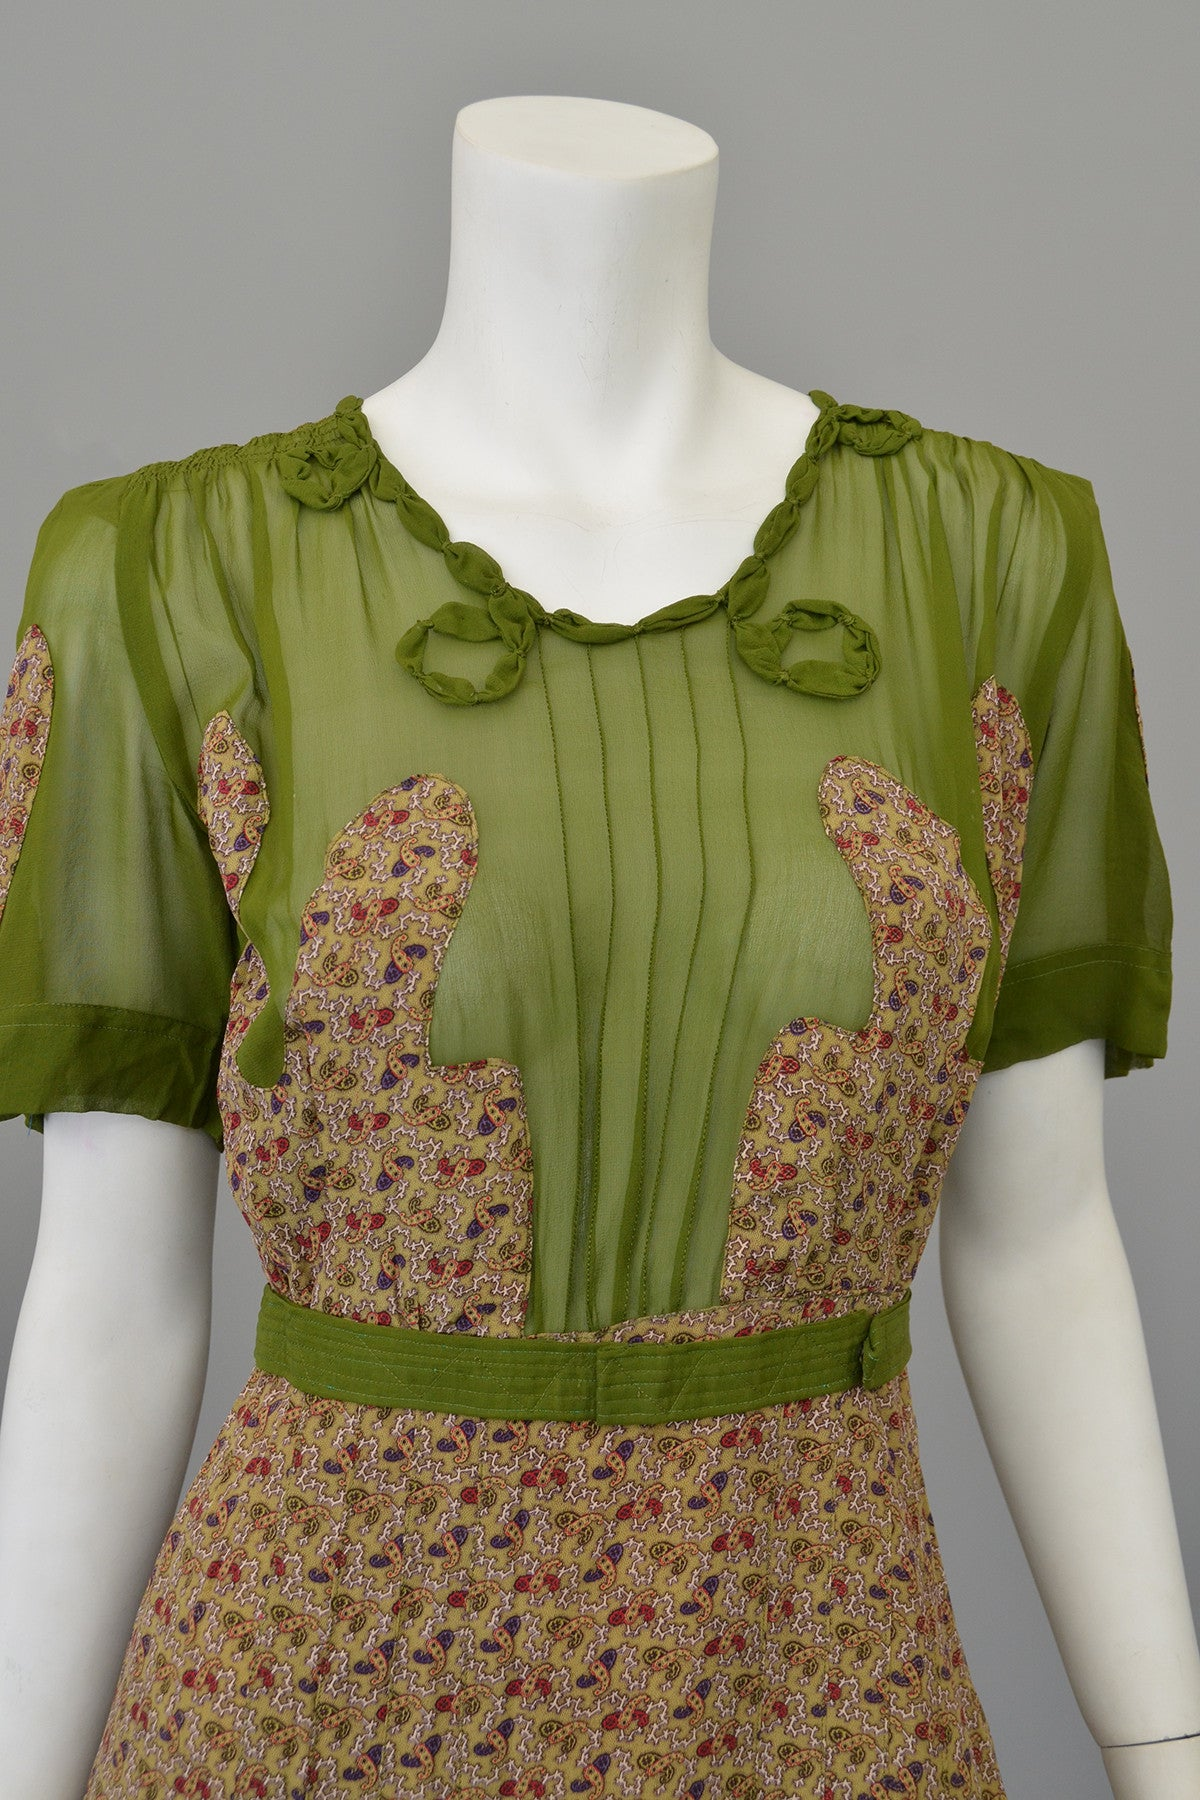 1930s Novelty Print Olive Green Chiffon Appliqué Dress